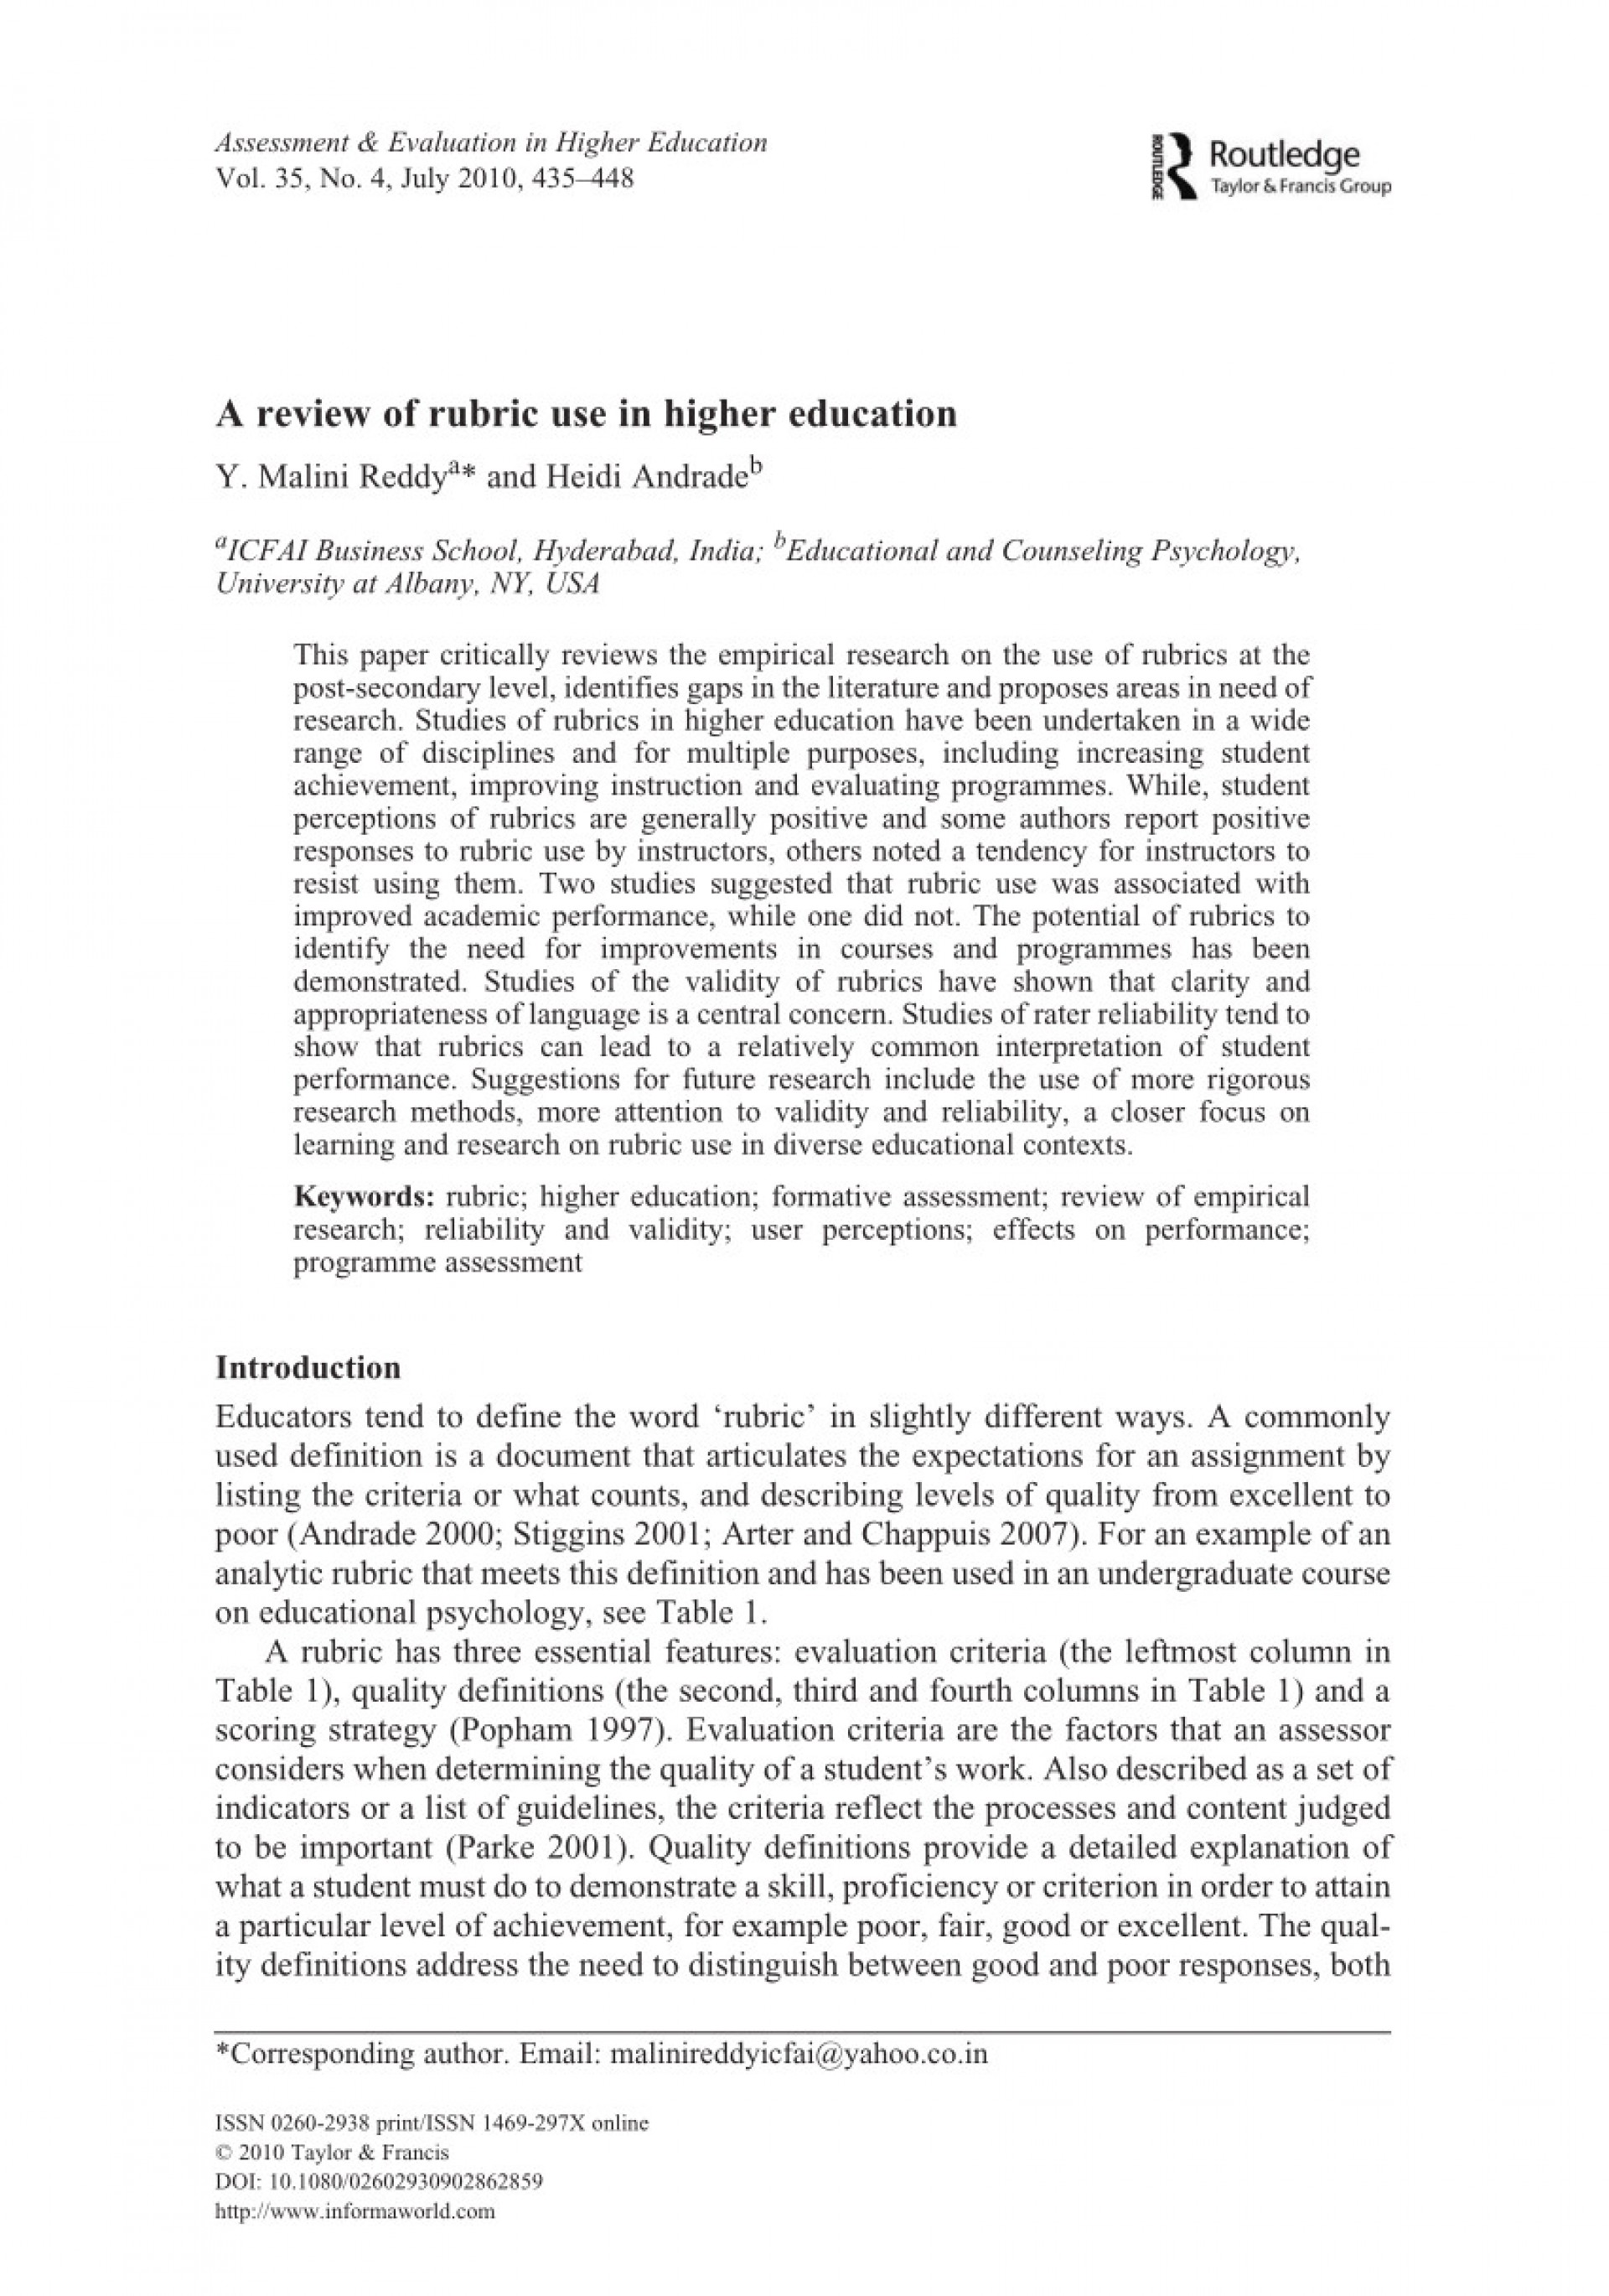 007 Higher Education Research Paper Pdf Rubric High School Lovely Review Of Use Amazing 1920